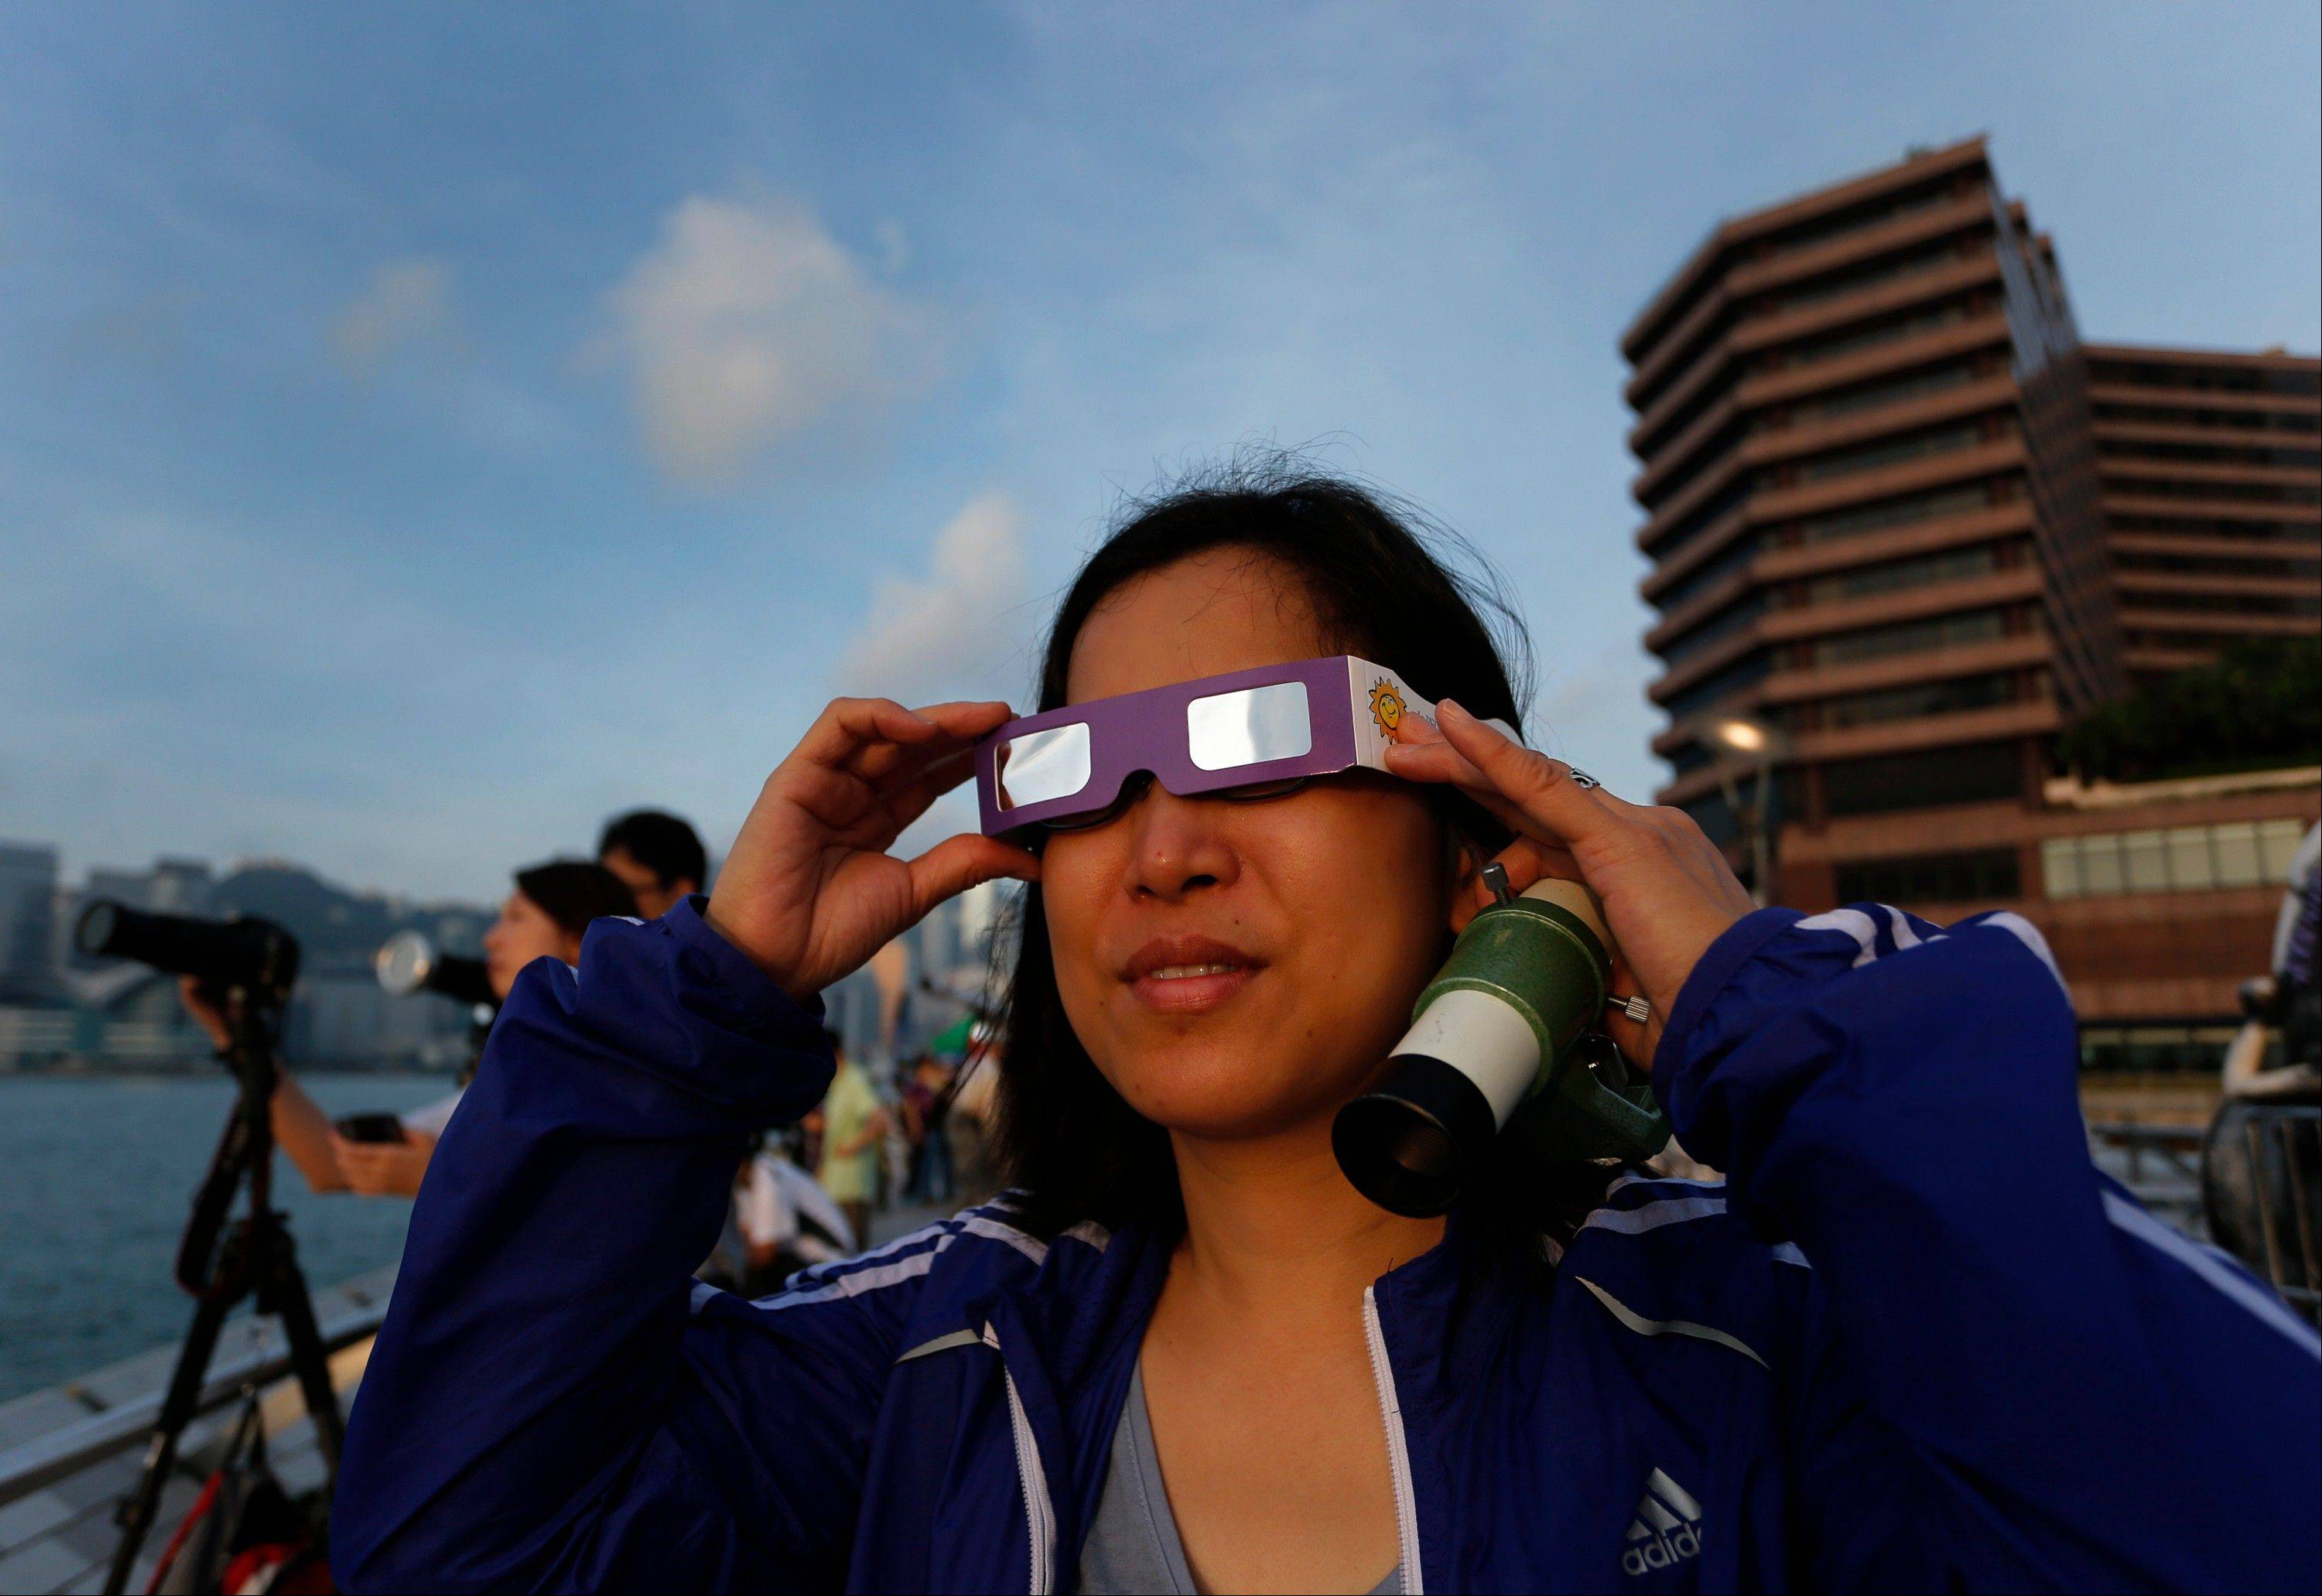 A Hong Kong stargazer uses a special sunglasses to observe the transit of Venus along the Victoria Habour in Hong Kong Wednesday, June 6, 2012. Stargazers around the world are setting up special telescopes and passing out cardboard eclipse glasses to view the once-in-a-lifetime celestial cameo of Venus passing in front of the sun.